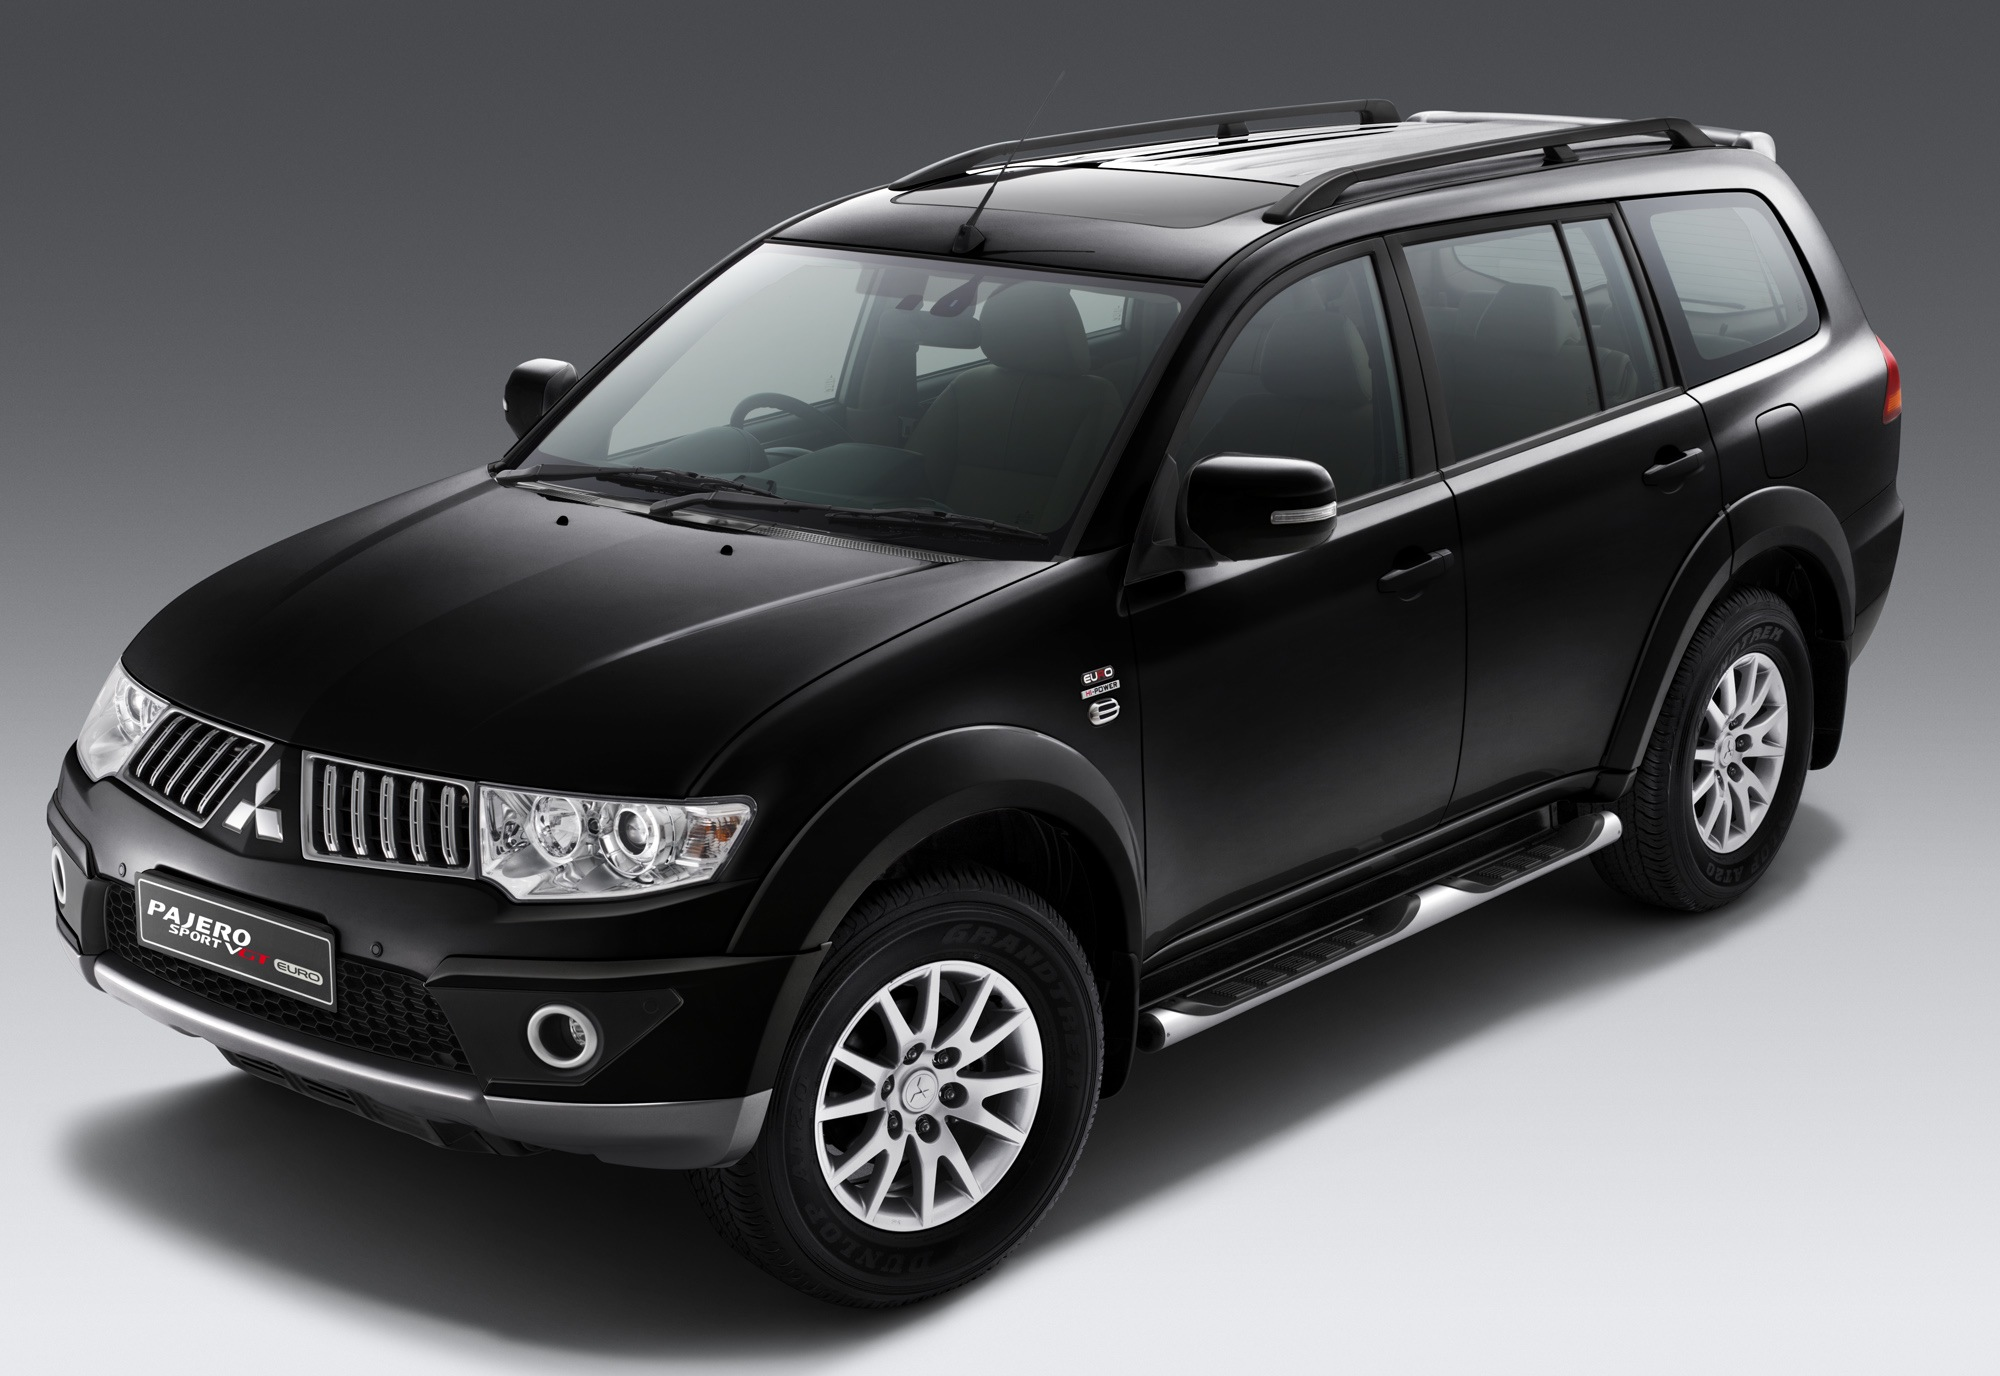 2014 Mitsubishi Pajero sport   pictures, information and specs